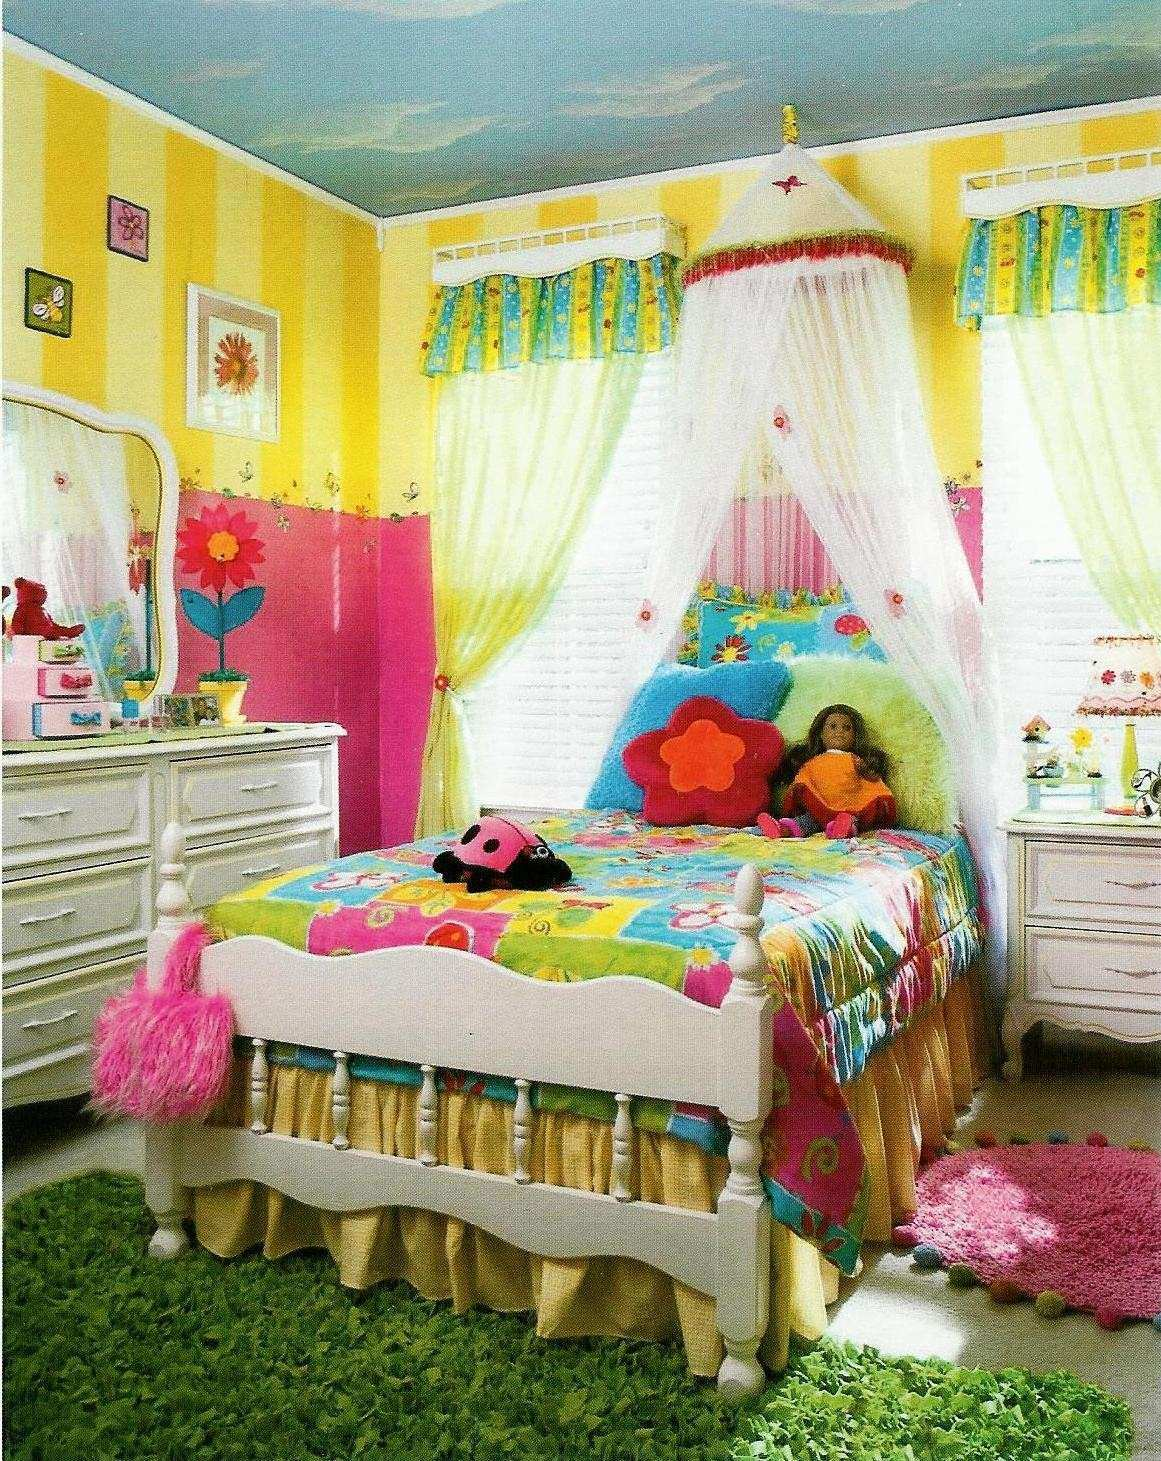 Wall Decor for Kids Room Inspirational Kids Room Decorating